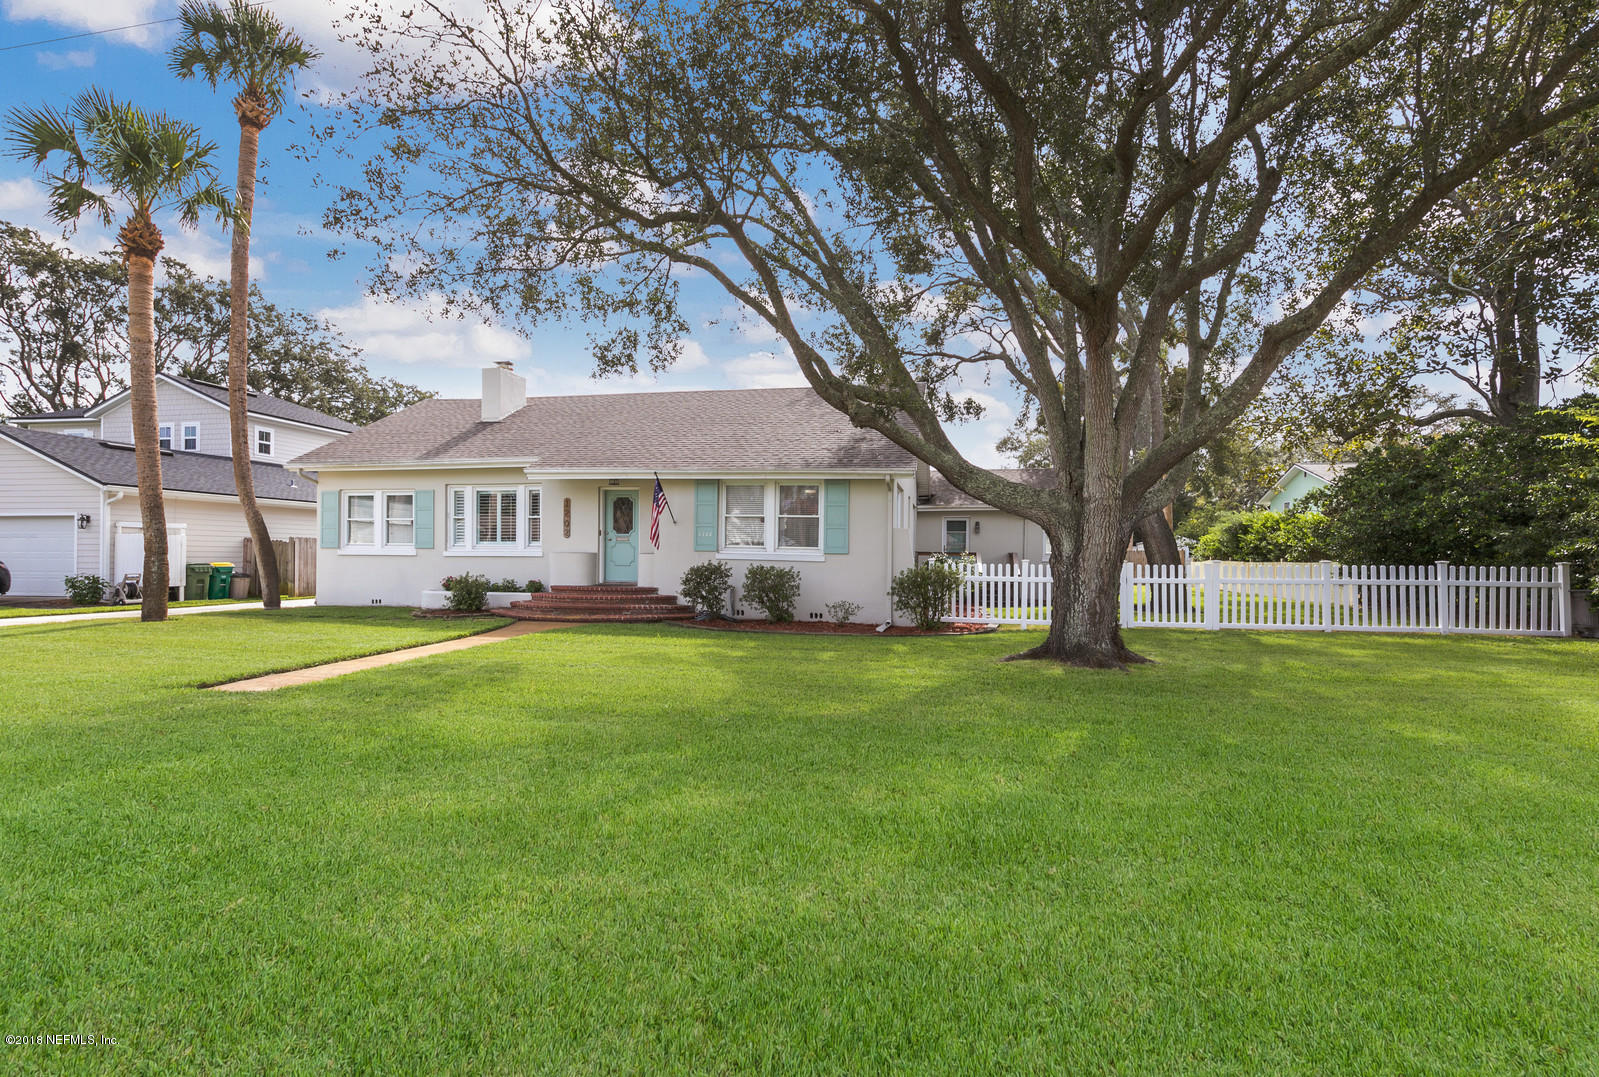 1202 2ND, JACKSONVILLE BEACH, FLORIDA 32250, 4 Bedrooms Bedrooms, ,2 BathroomsBathrooms,Residential - single family,For sale,2ND,966117